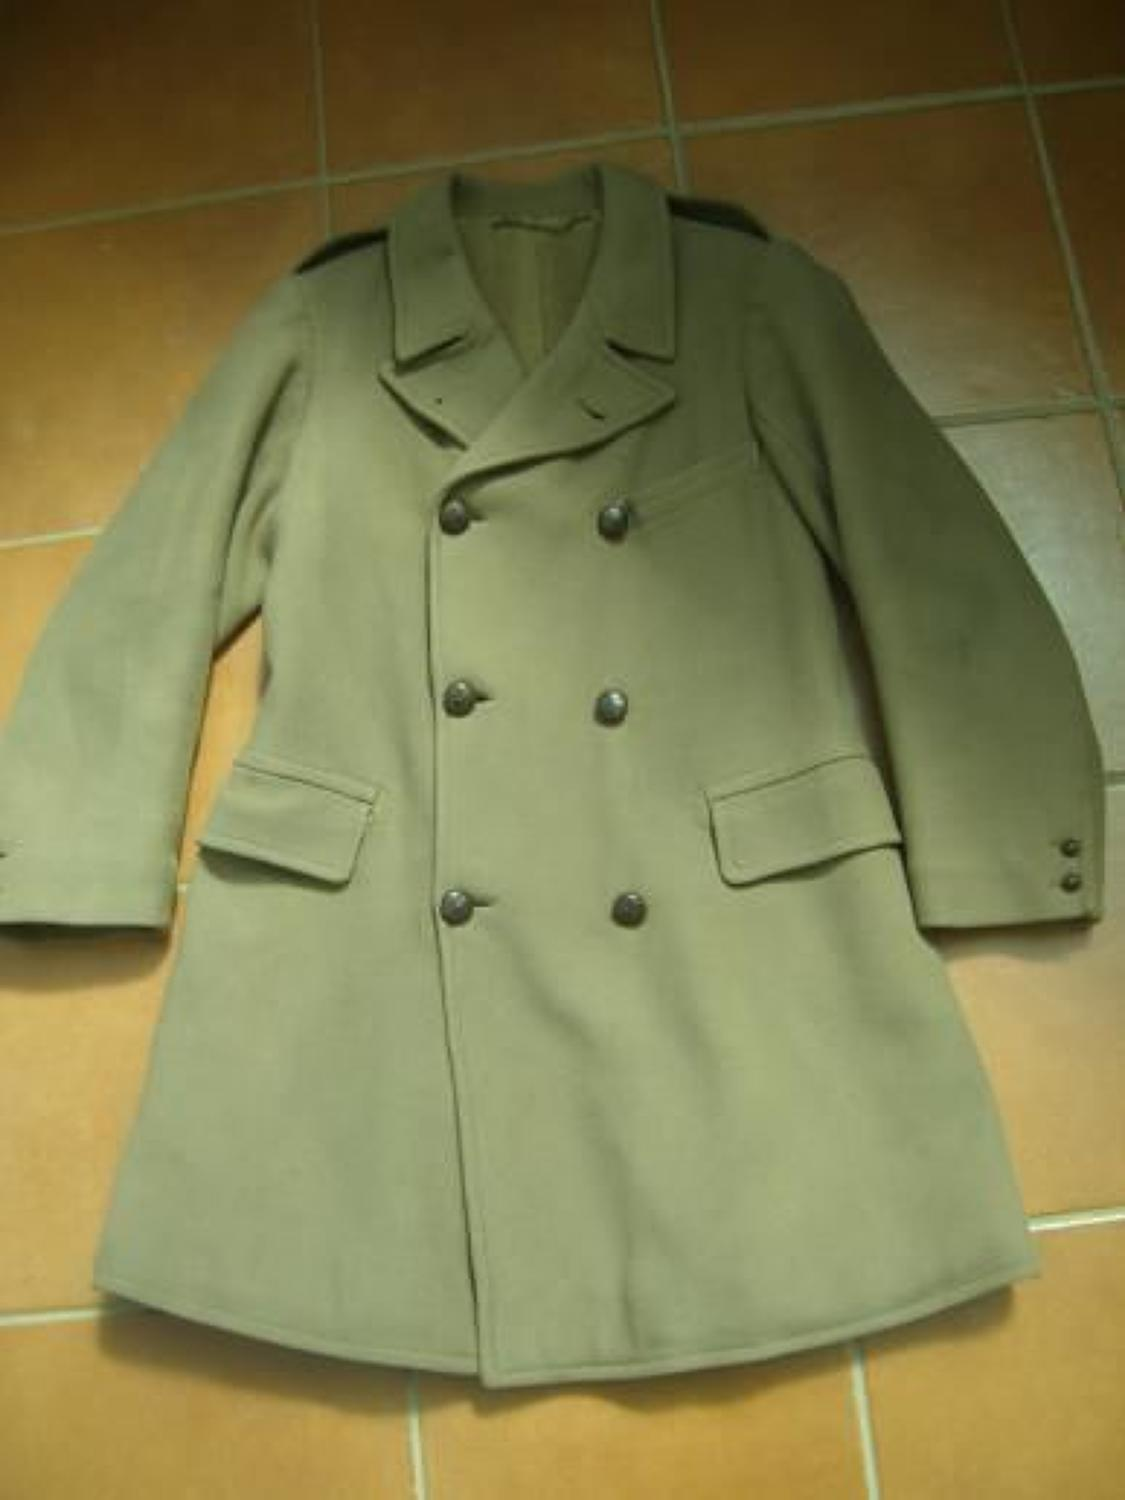 WW1 Officers 'British Warm' camel wool coat. Dated 1915.